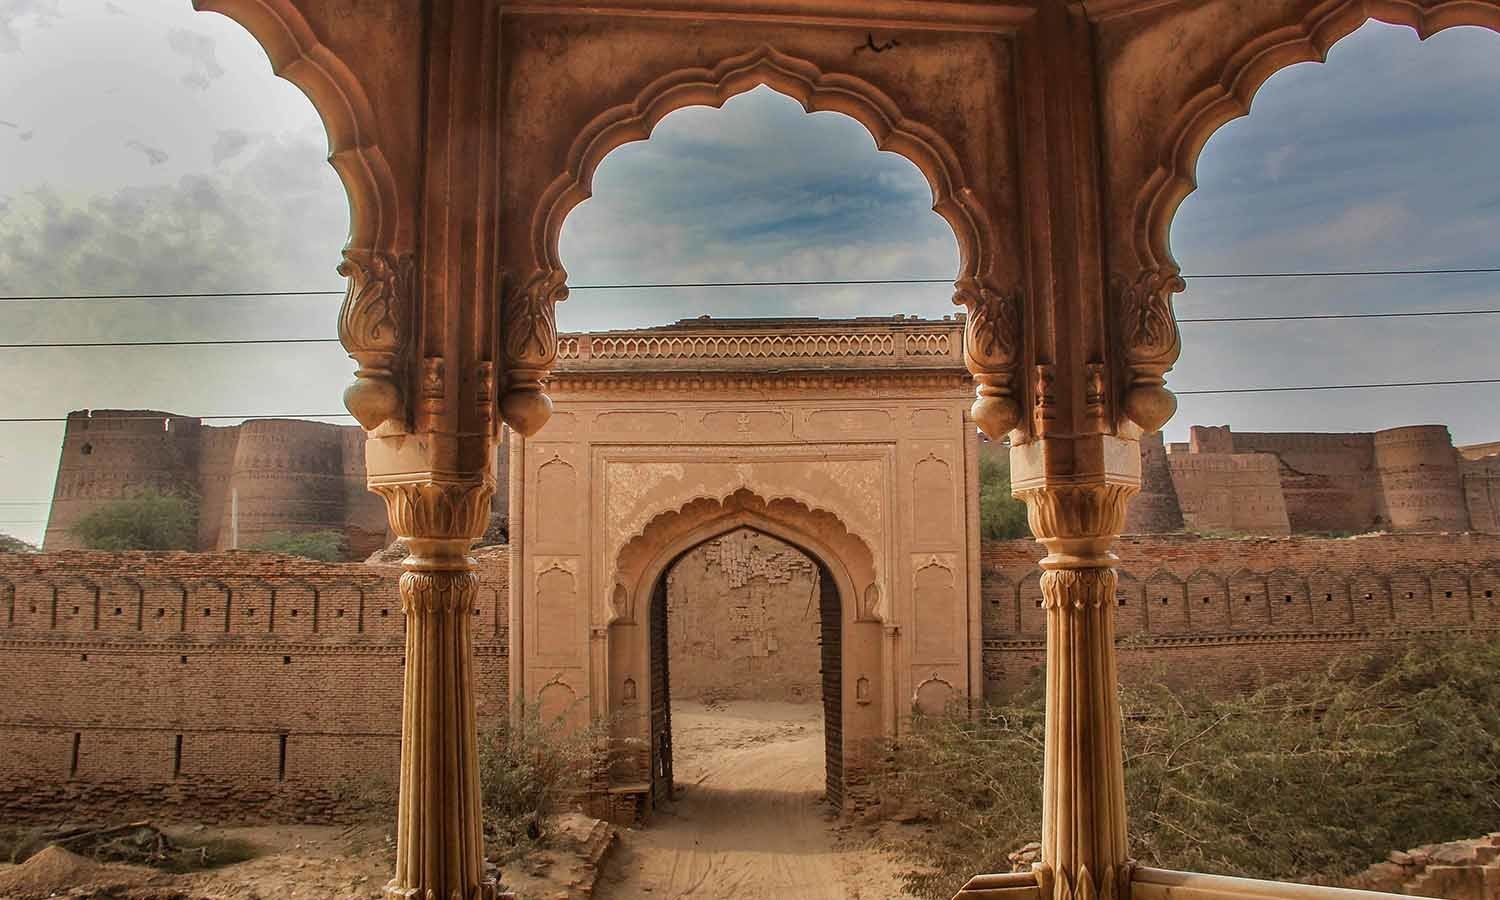 The fort as it looks from the balcony of the mosque in its courtyard.─ Fazal Khaliq